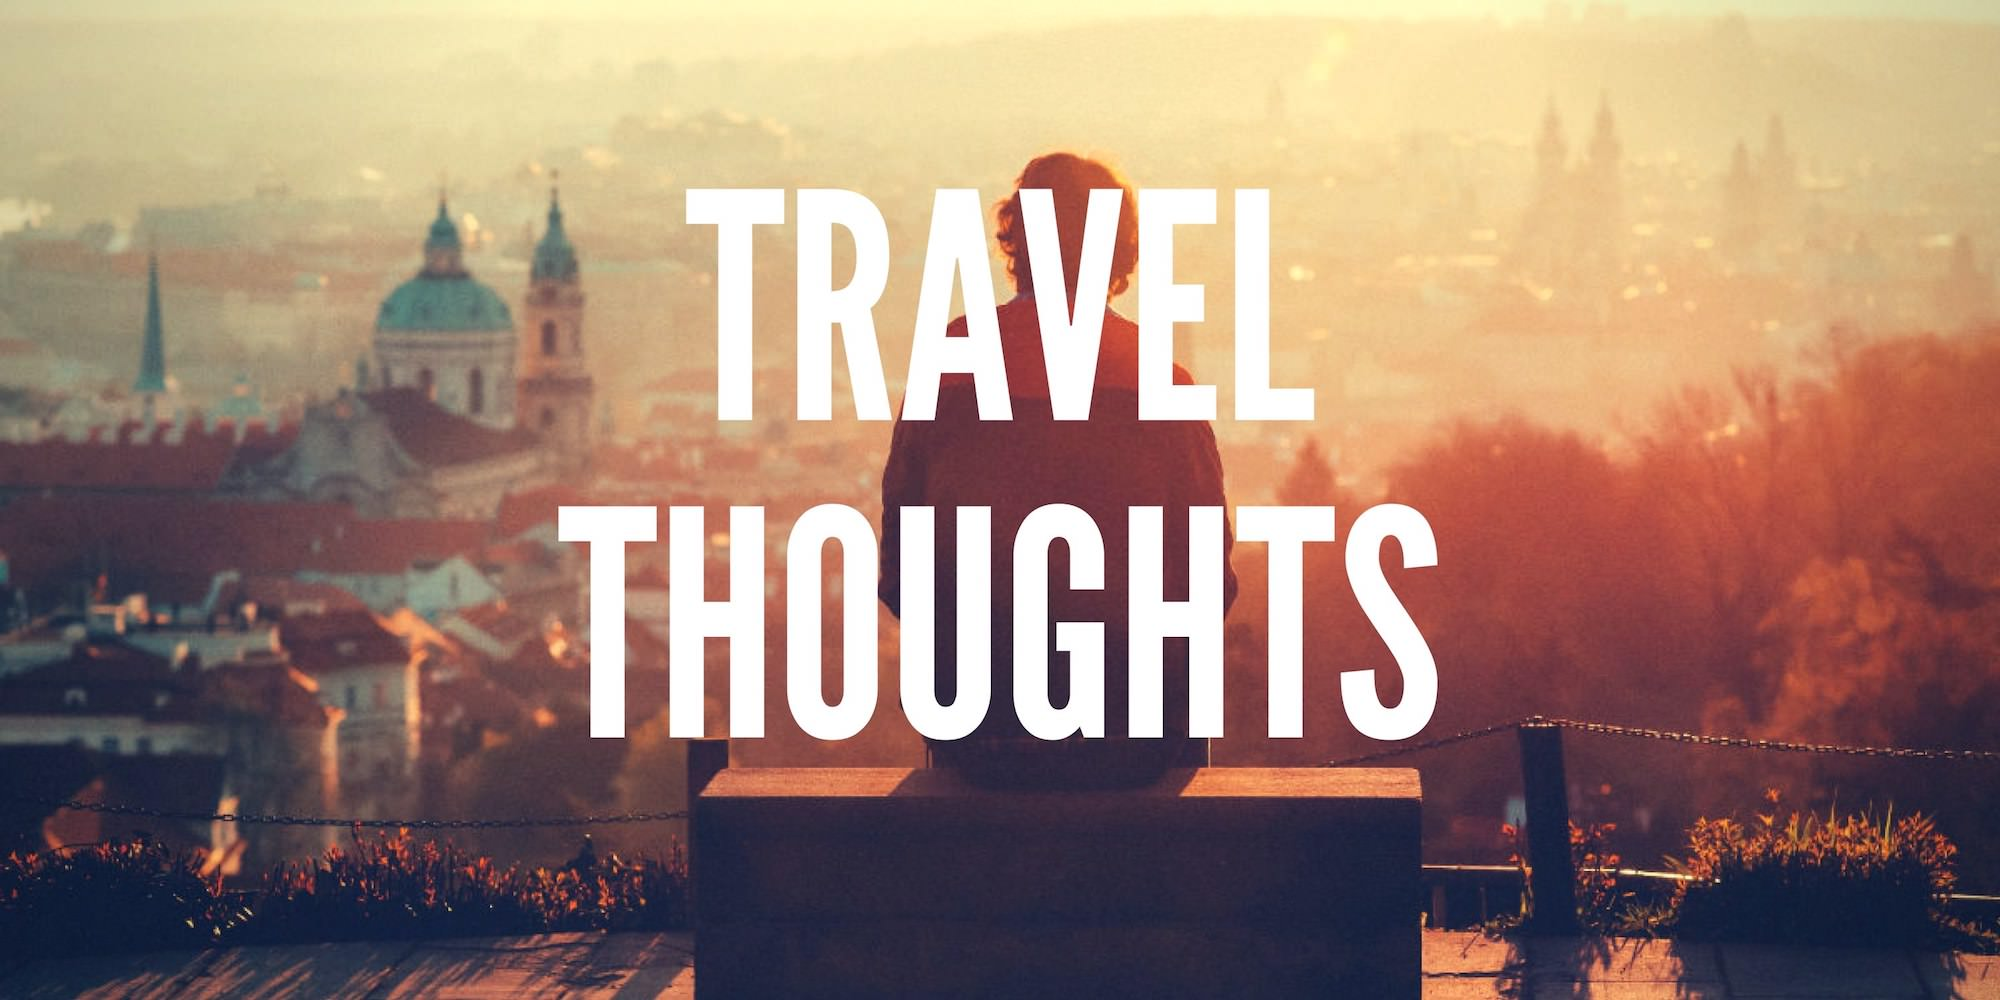 Travel Thoughts - Authentic Traveling - Full Size mid Text